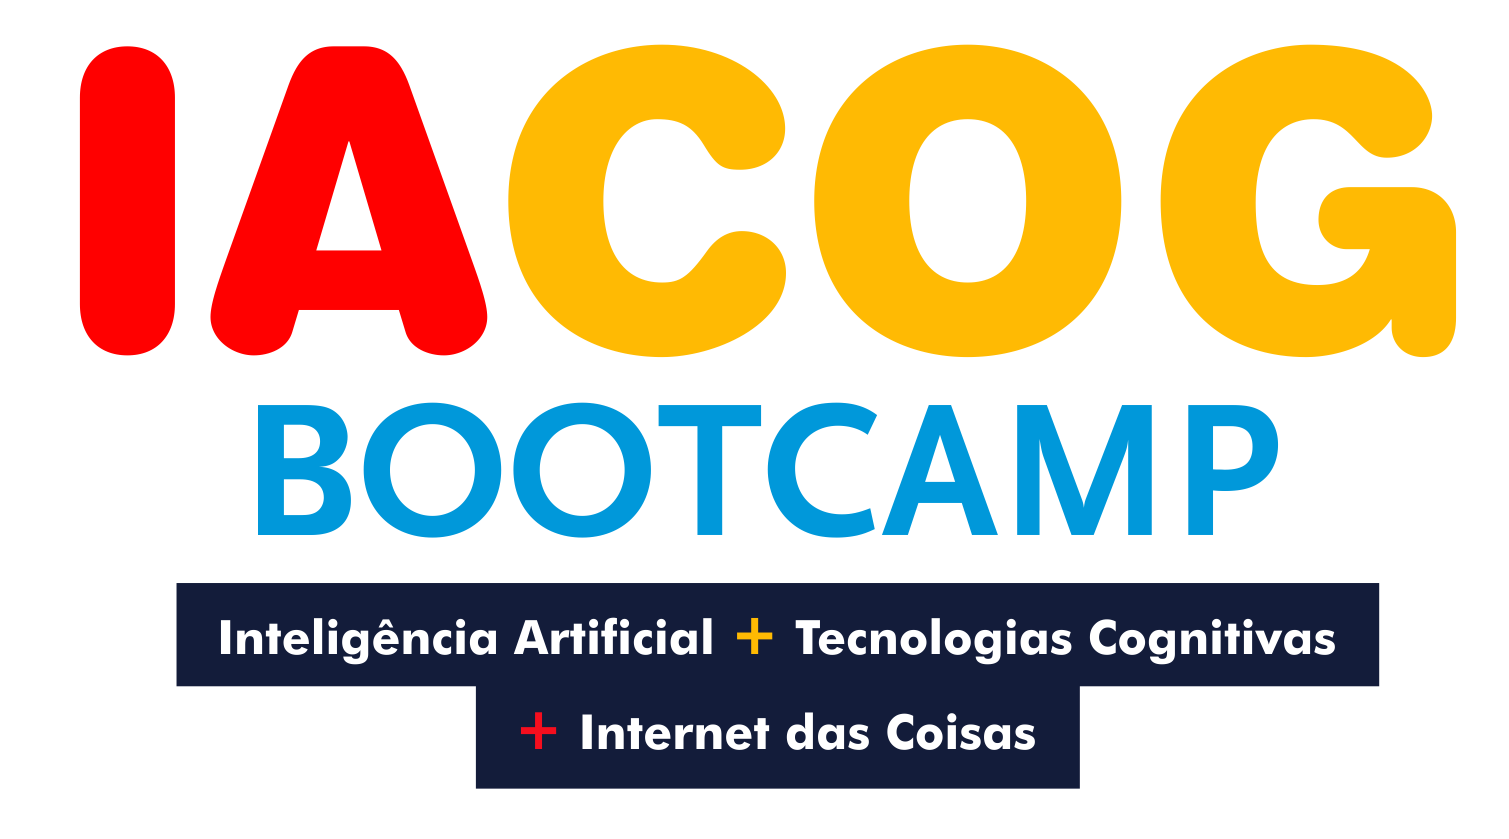 IACOG  Conference & Bootcamp